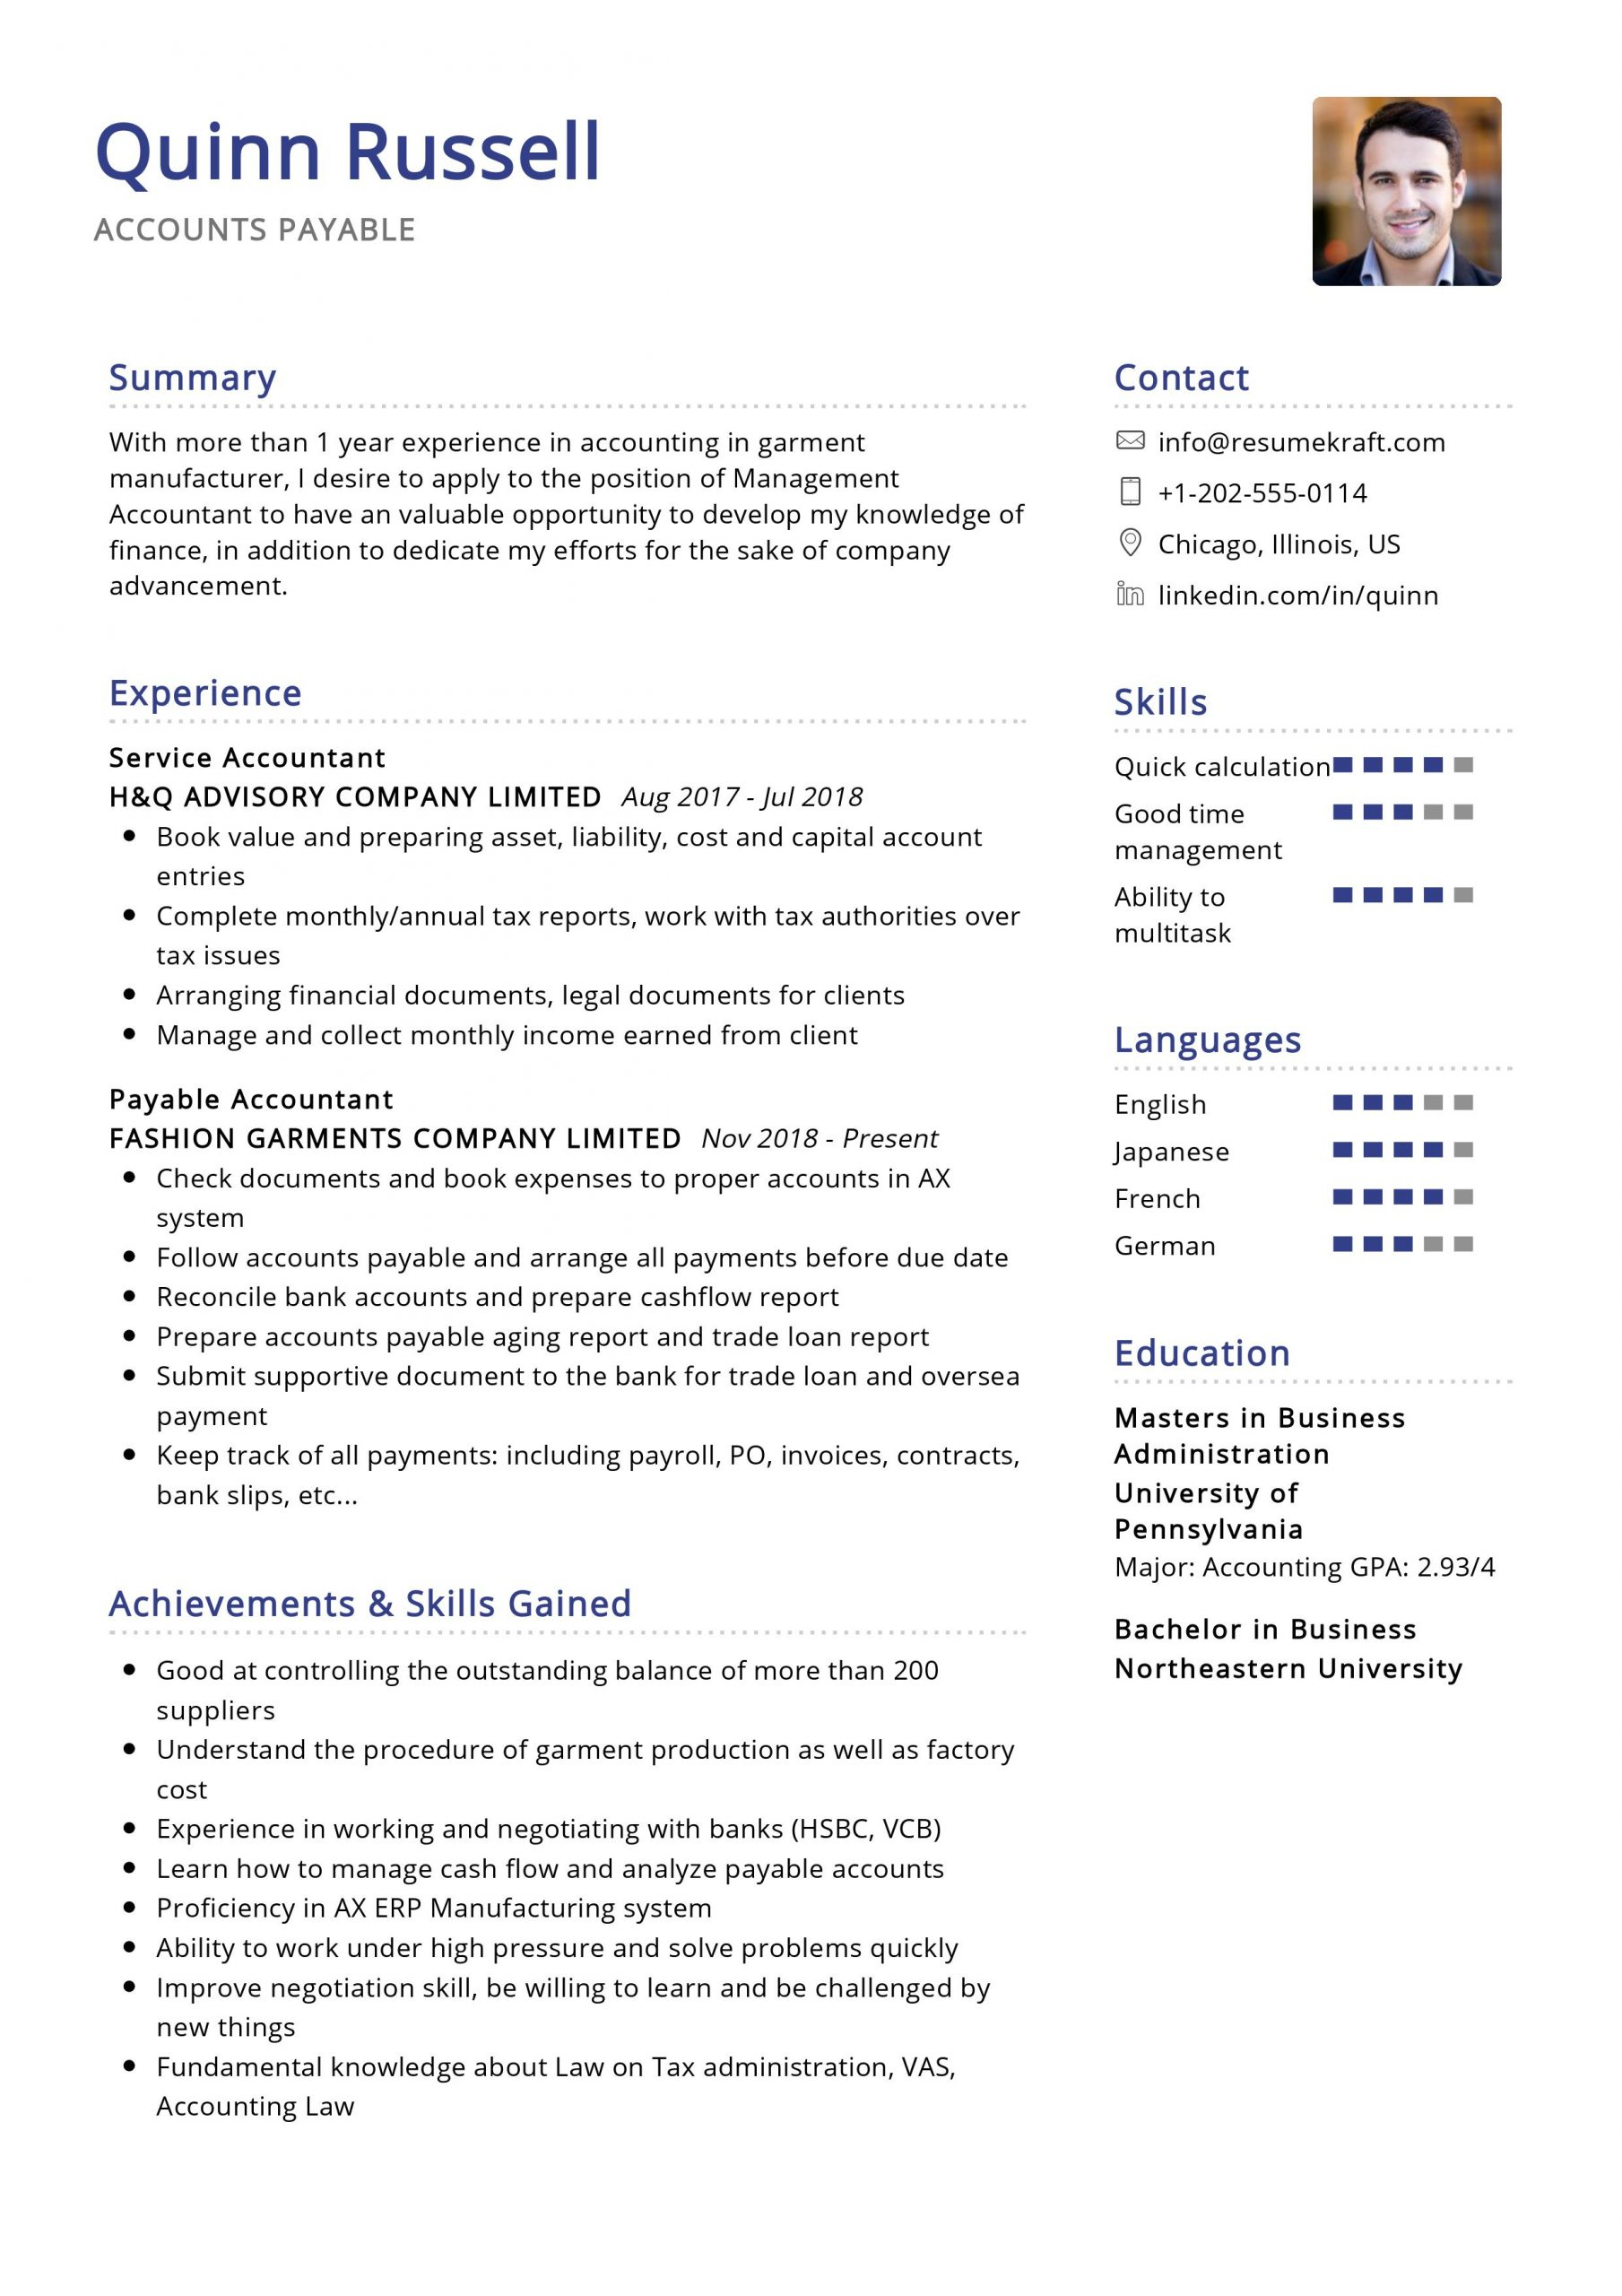 accounts payable resume sample resumekraft skills scaled summary description for Resume Accounts Payable Resume Skills